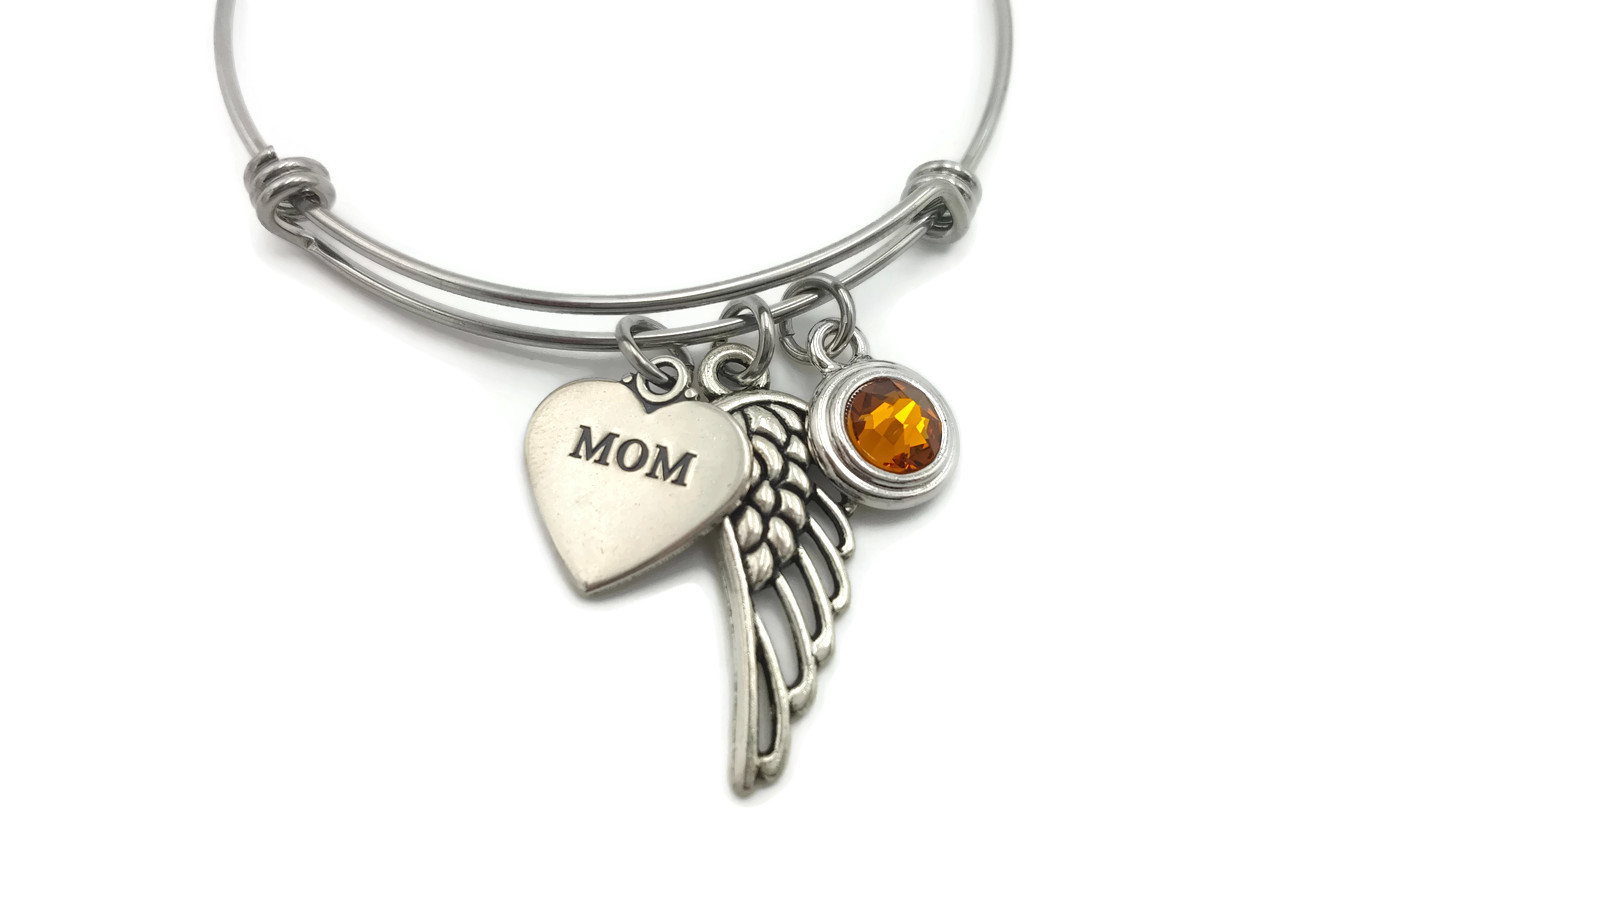 Memorial Bracelet for Loss of Mom - Remembrance Bracelet - Free Shipping